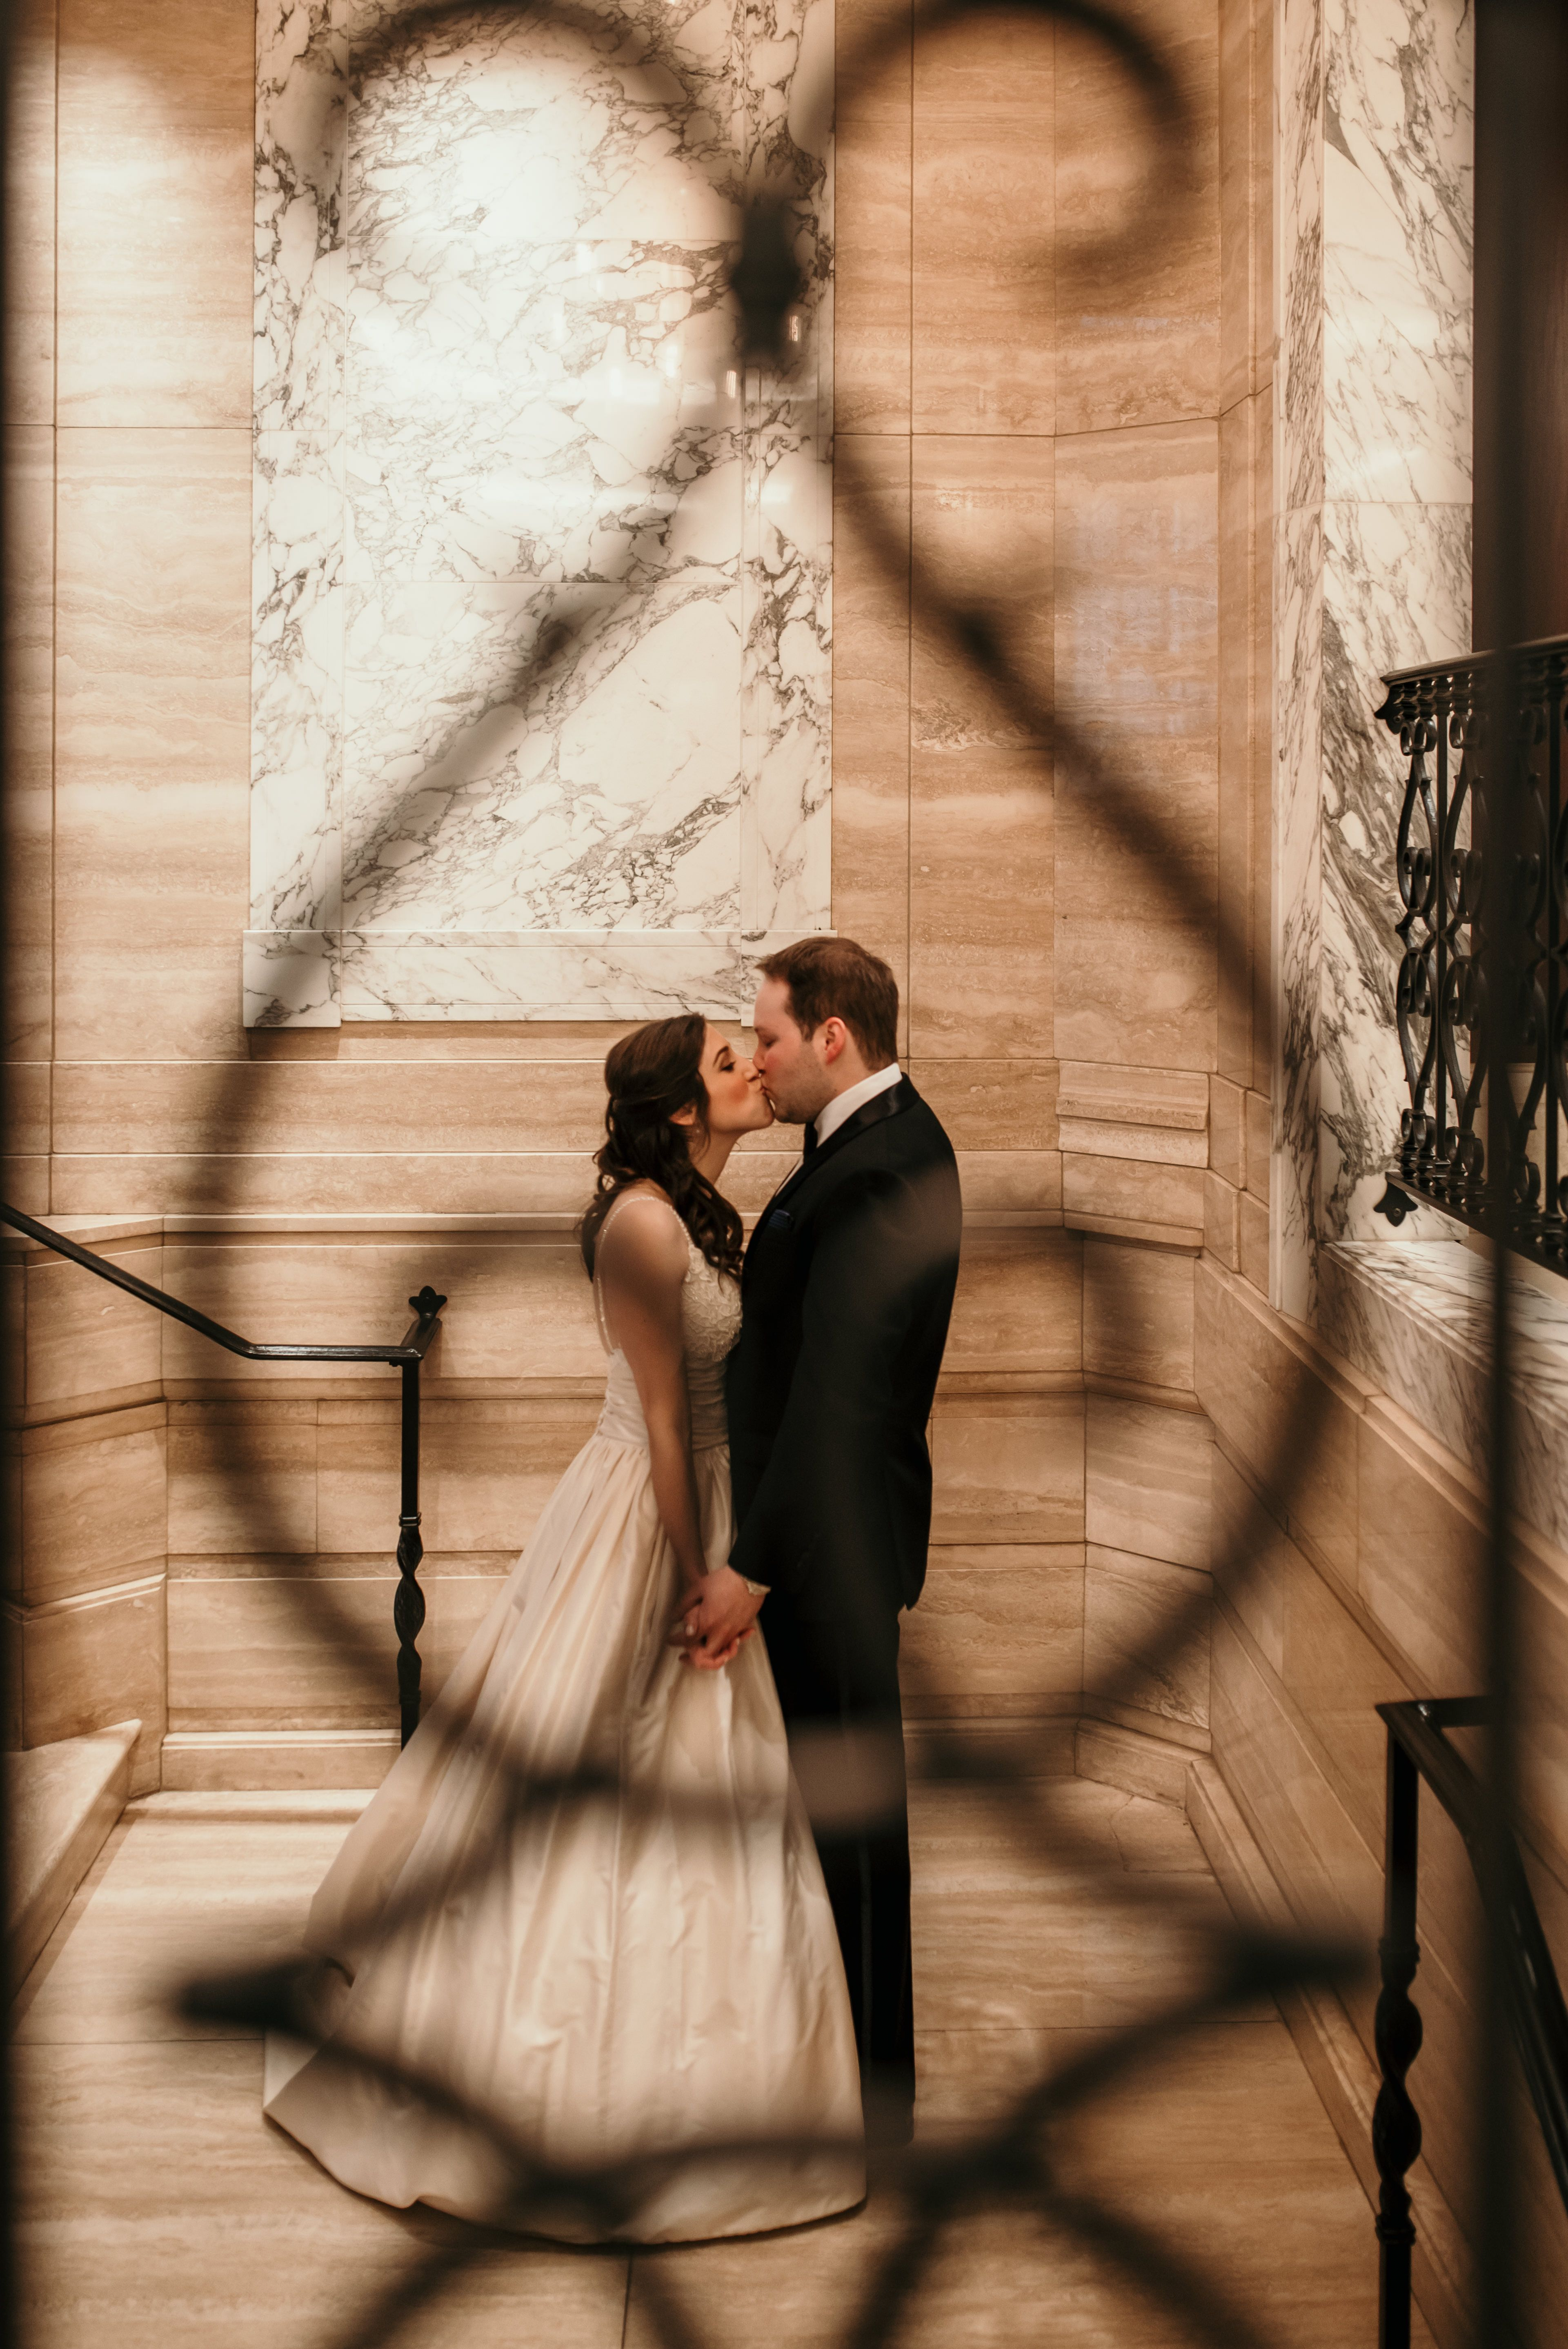 Last Kiss As Fiance S C Abby Rose Photo I Stumbled Into Shooting Weddings Almost By Accident Wedding Photography Poses Rose Photos Wedding Photography